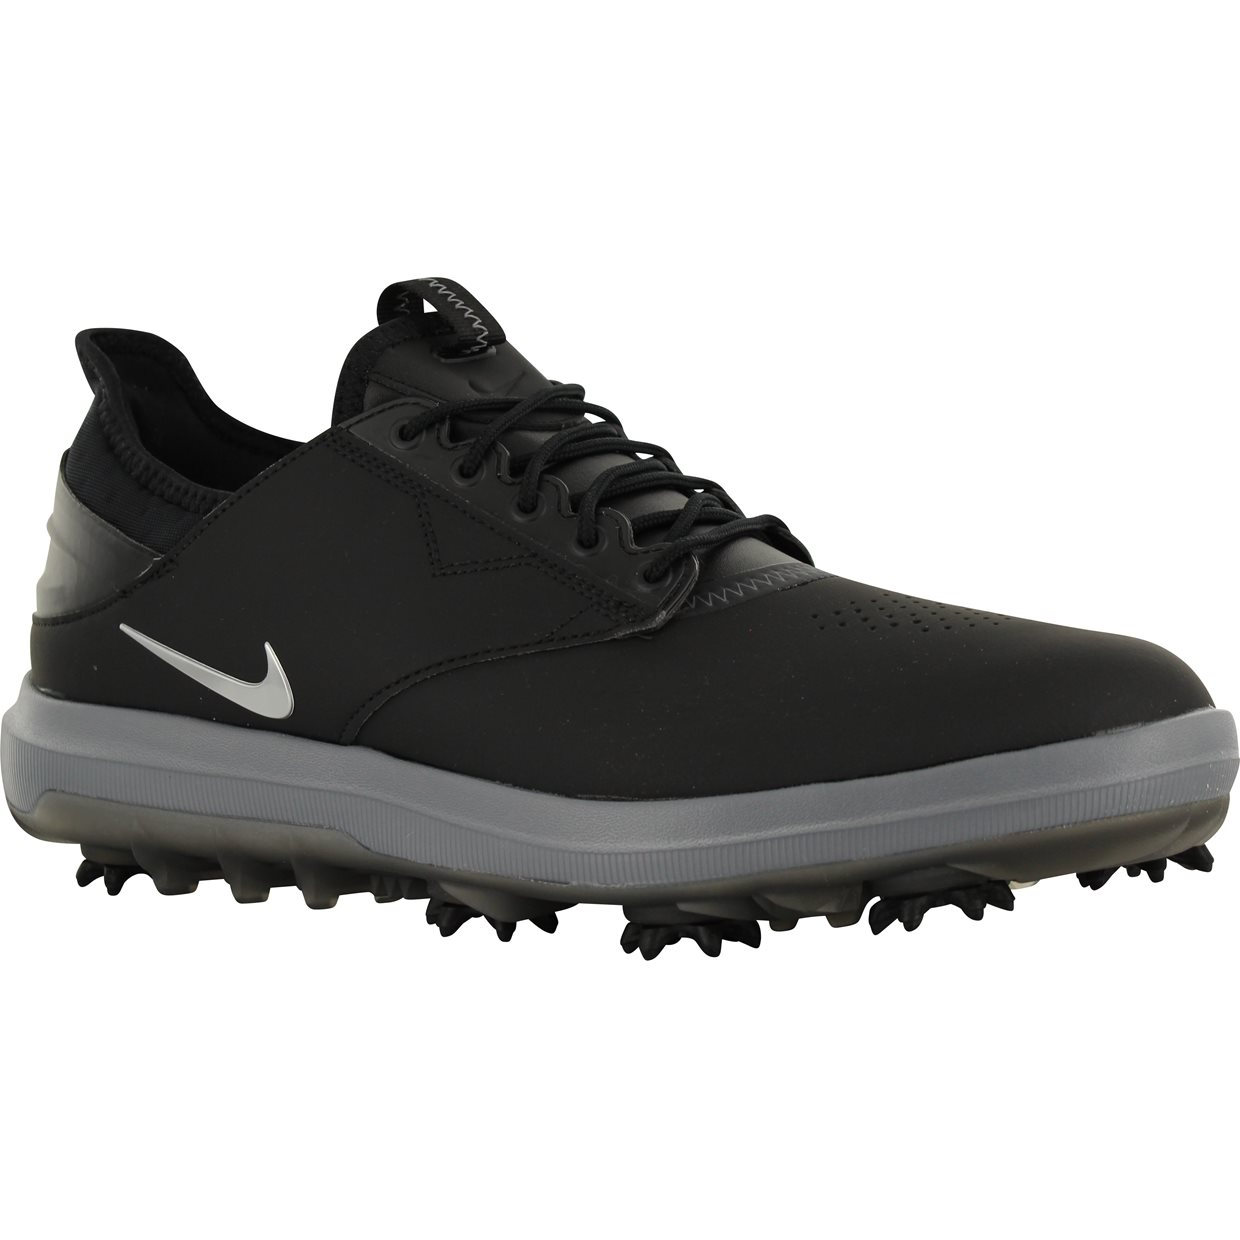 63fe299946a8b Nike Air Zoom Direct Golf Shoe. Drag 360 Left or Right to View. Alternate  Product Image View 1 ...